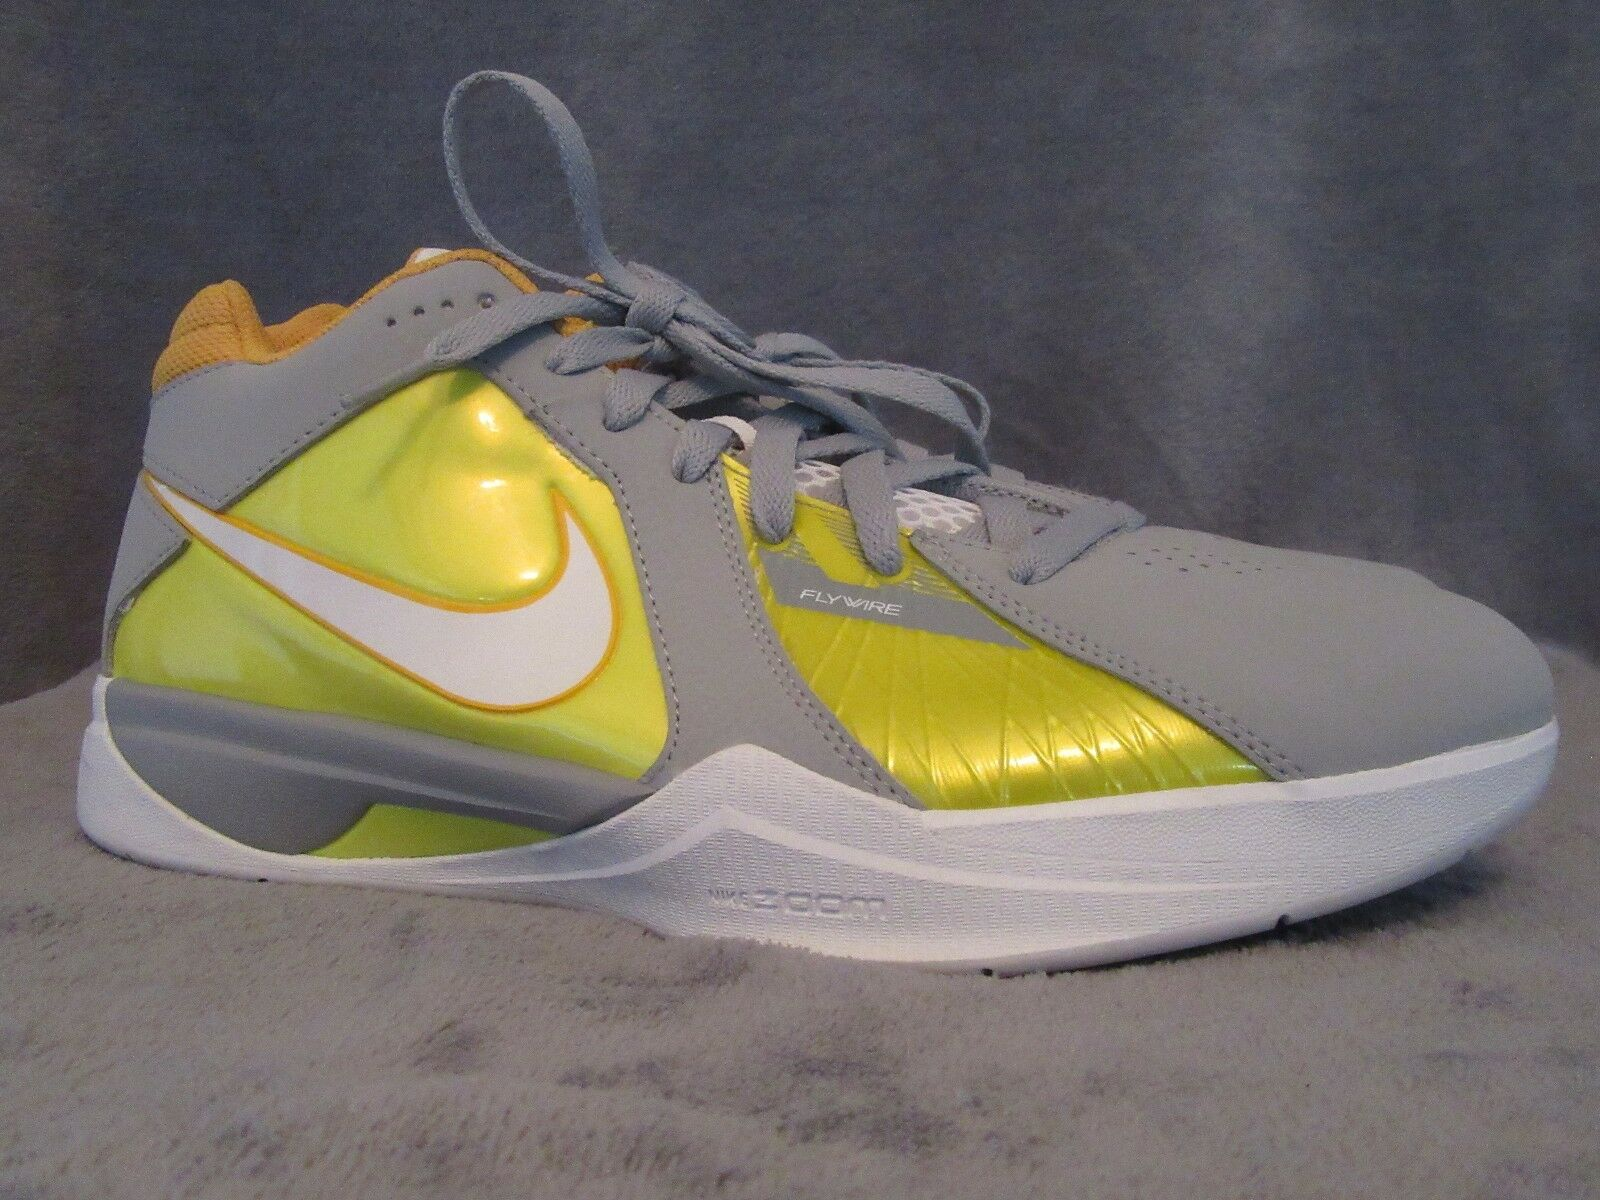 NIKE Zoom KD III Wolf Grey Del Sol Flywire Basketball shoes US 10 M NWOB